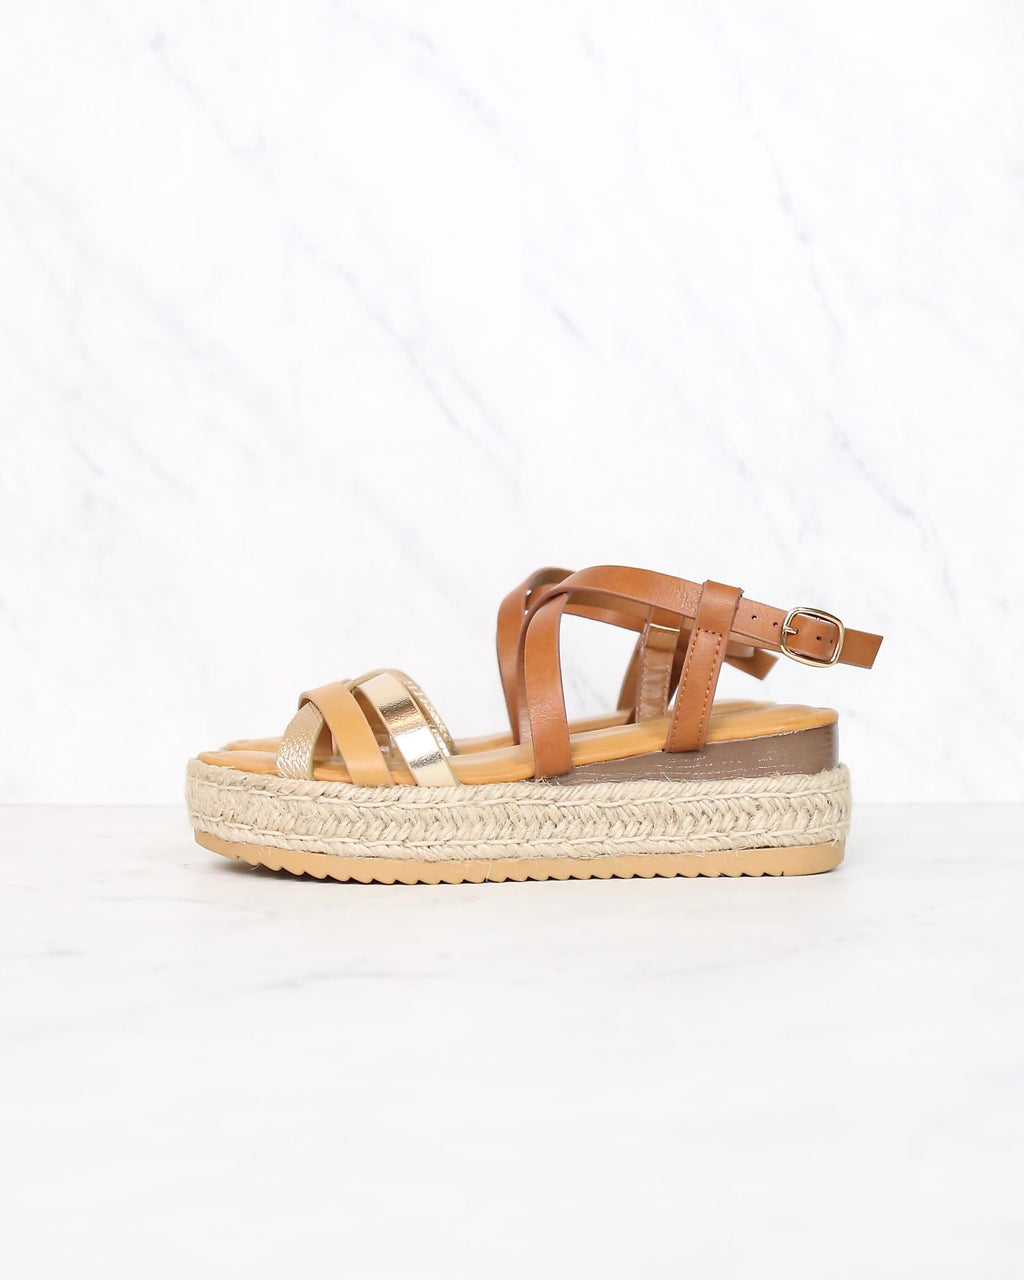 Multi Bands Crossed-Strap Espadrille Platform Sandal with Ankle Strap in Natural Multi